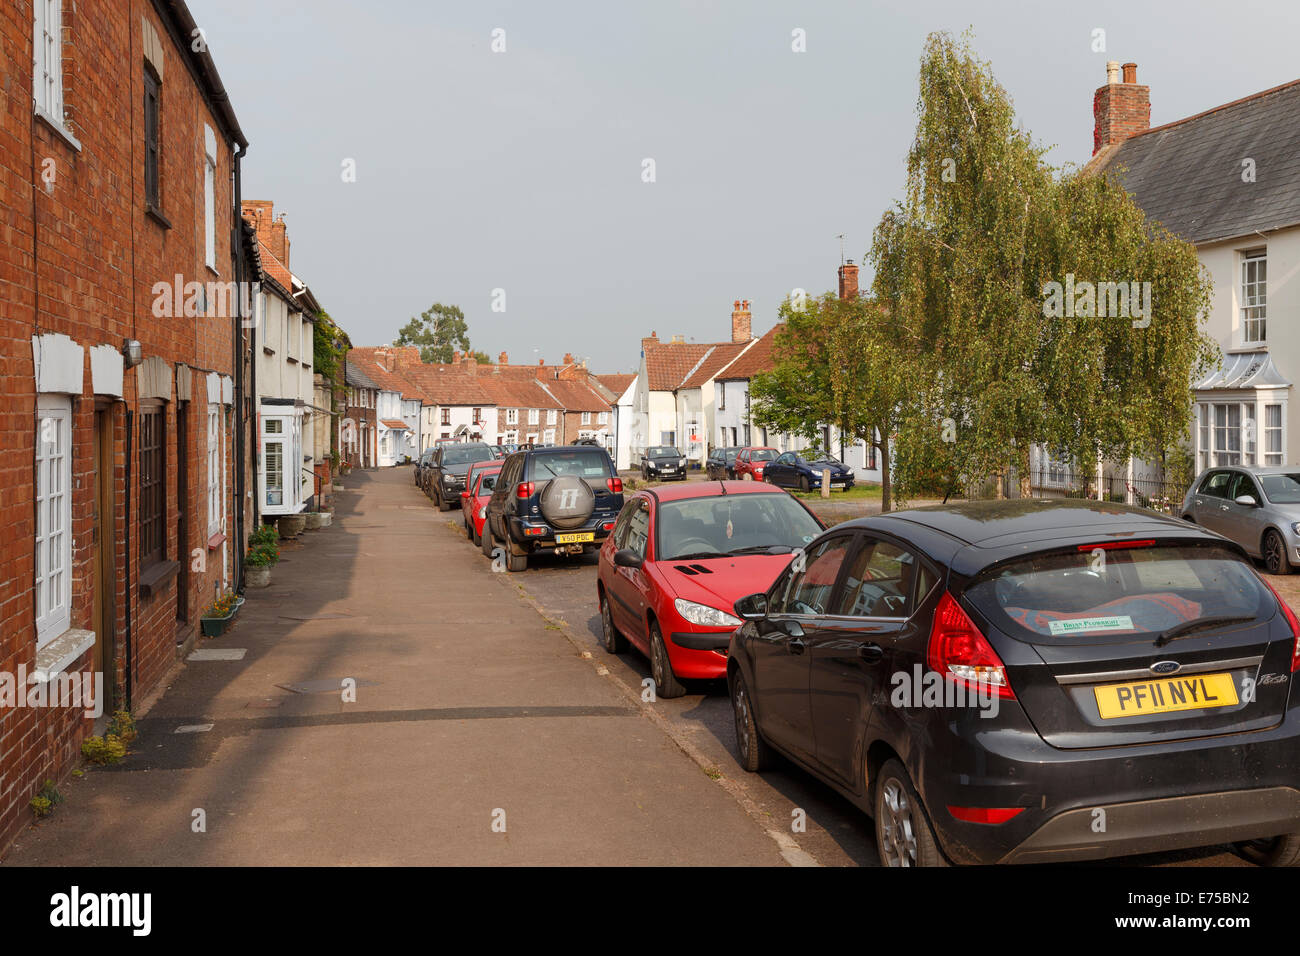 The village of Nether Stowey. - Stock Image